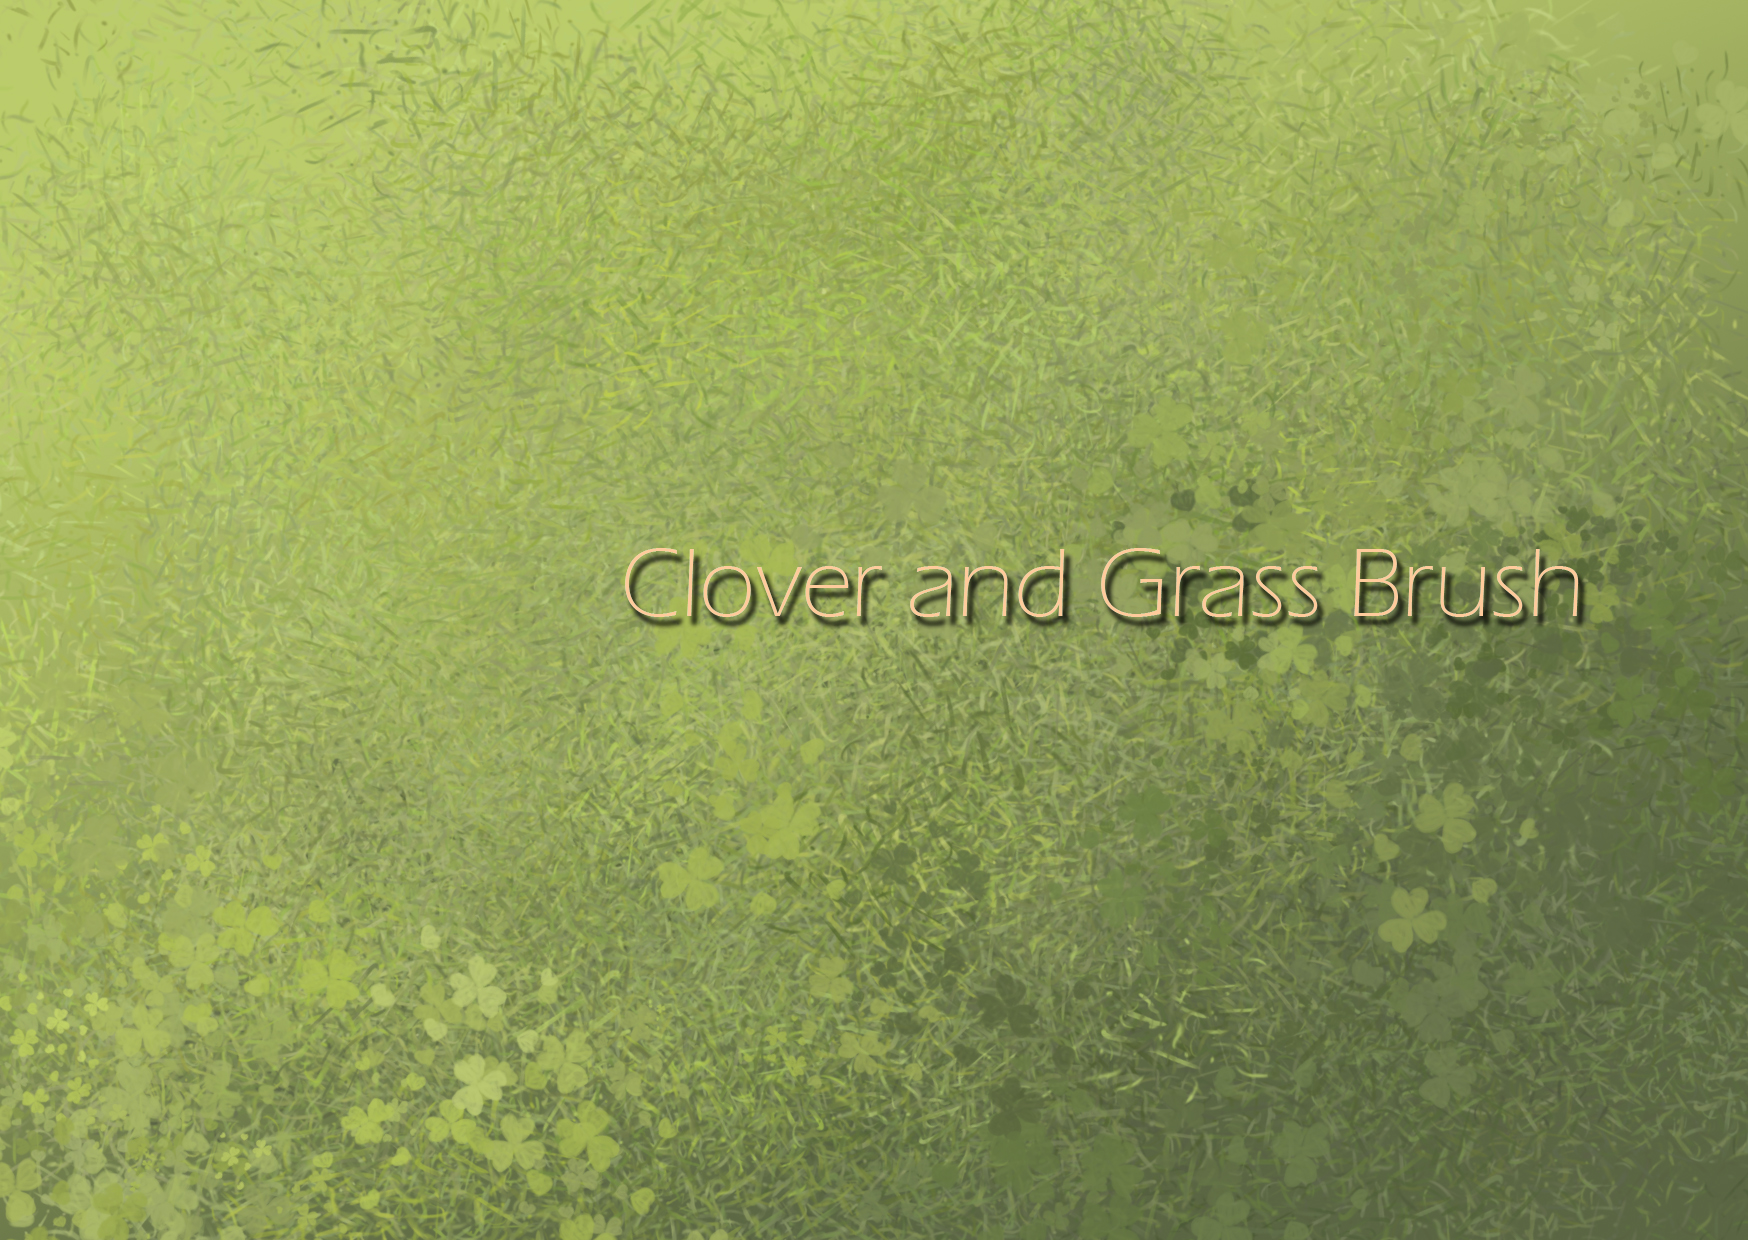 Clover and Grass brushes